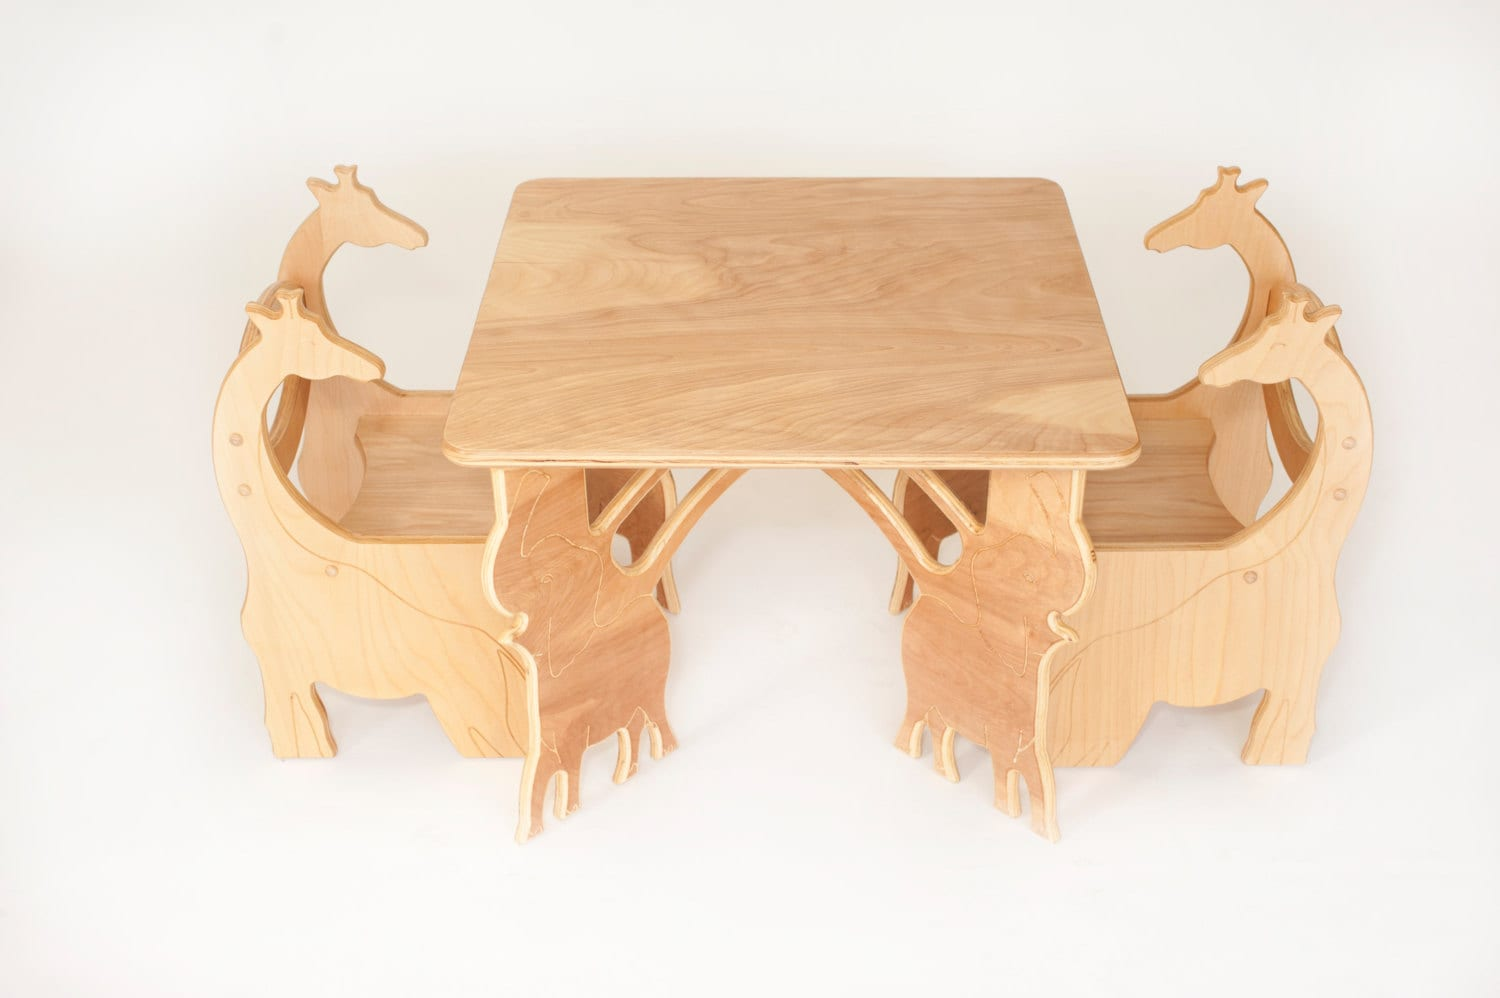 Toddler Square Elephant Table 2 Chairs by PopPopsFurnitureCo